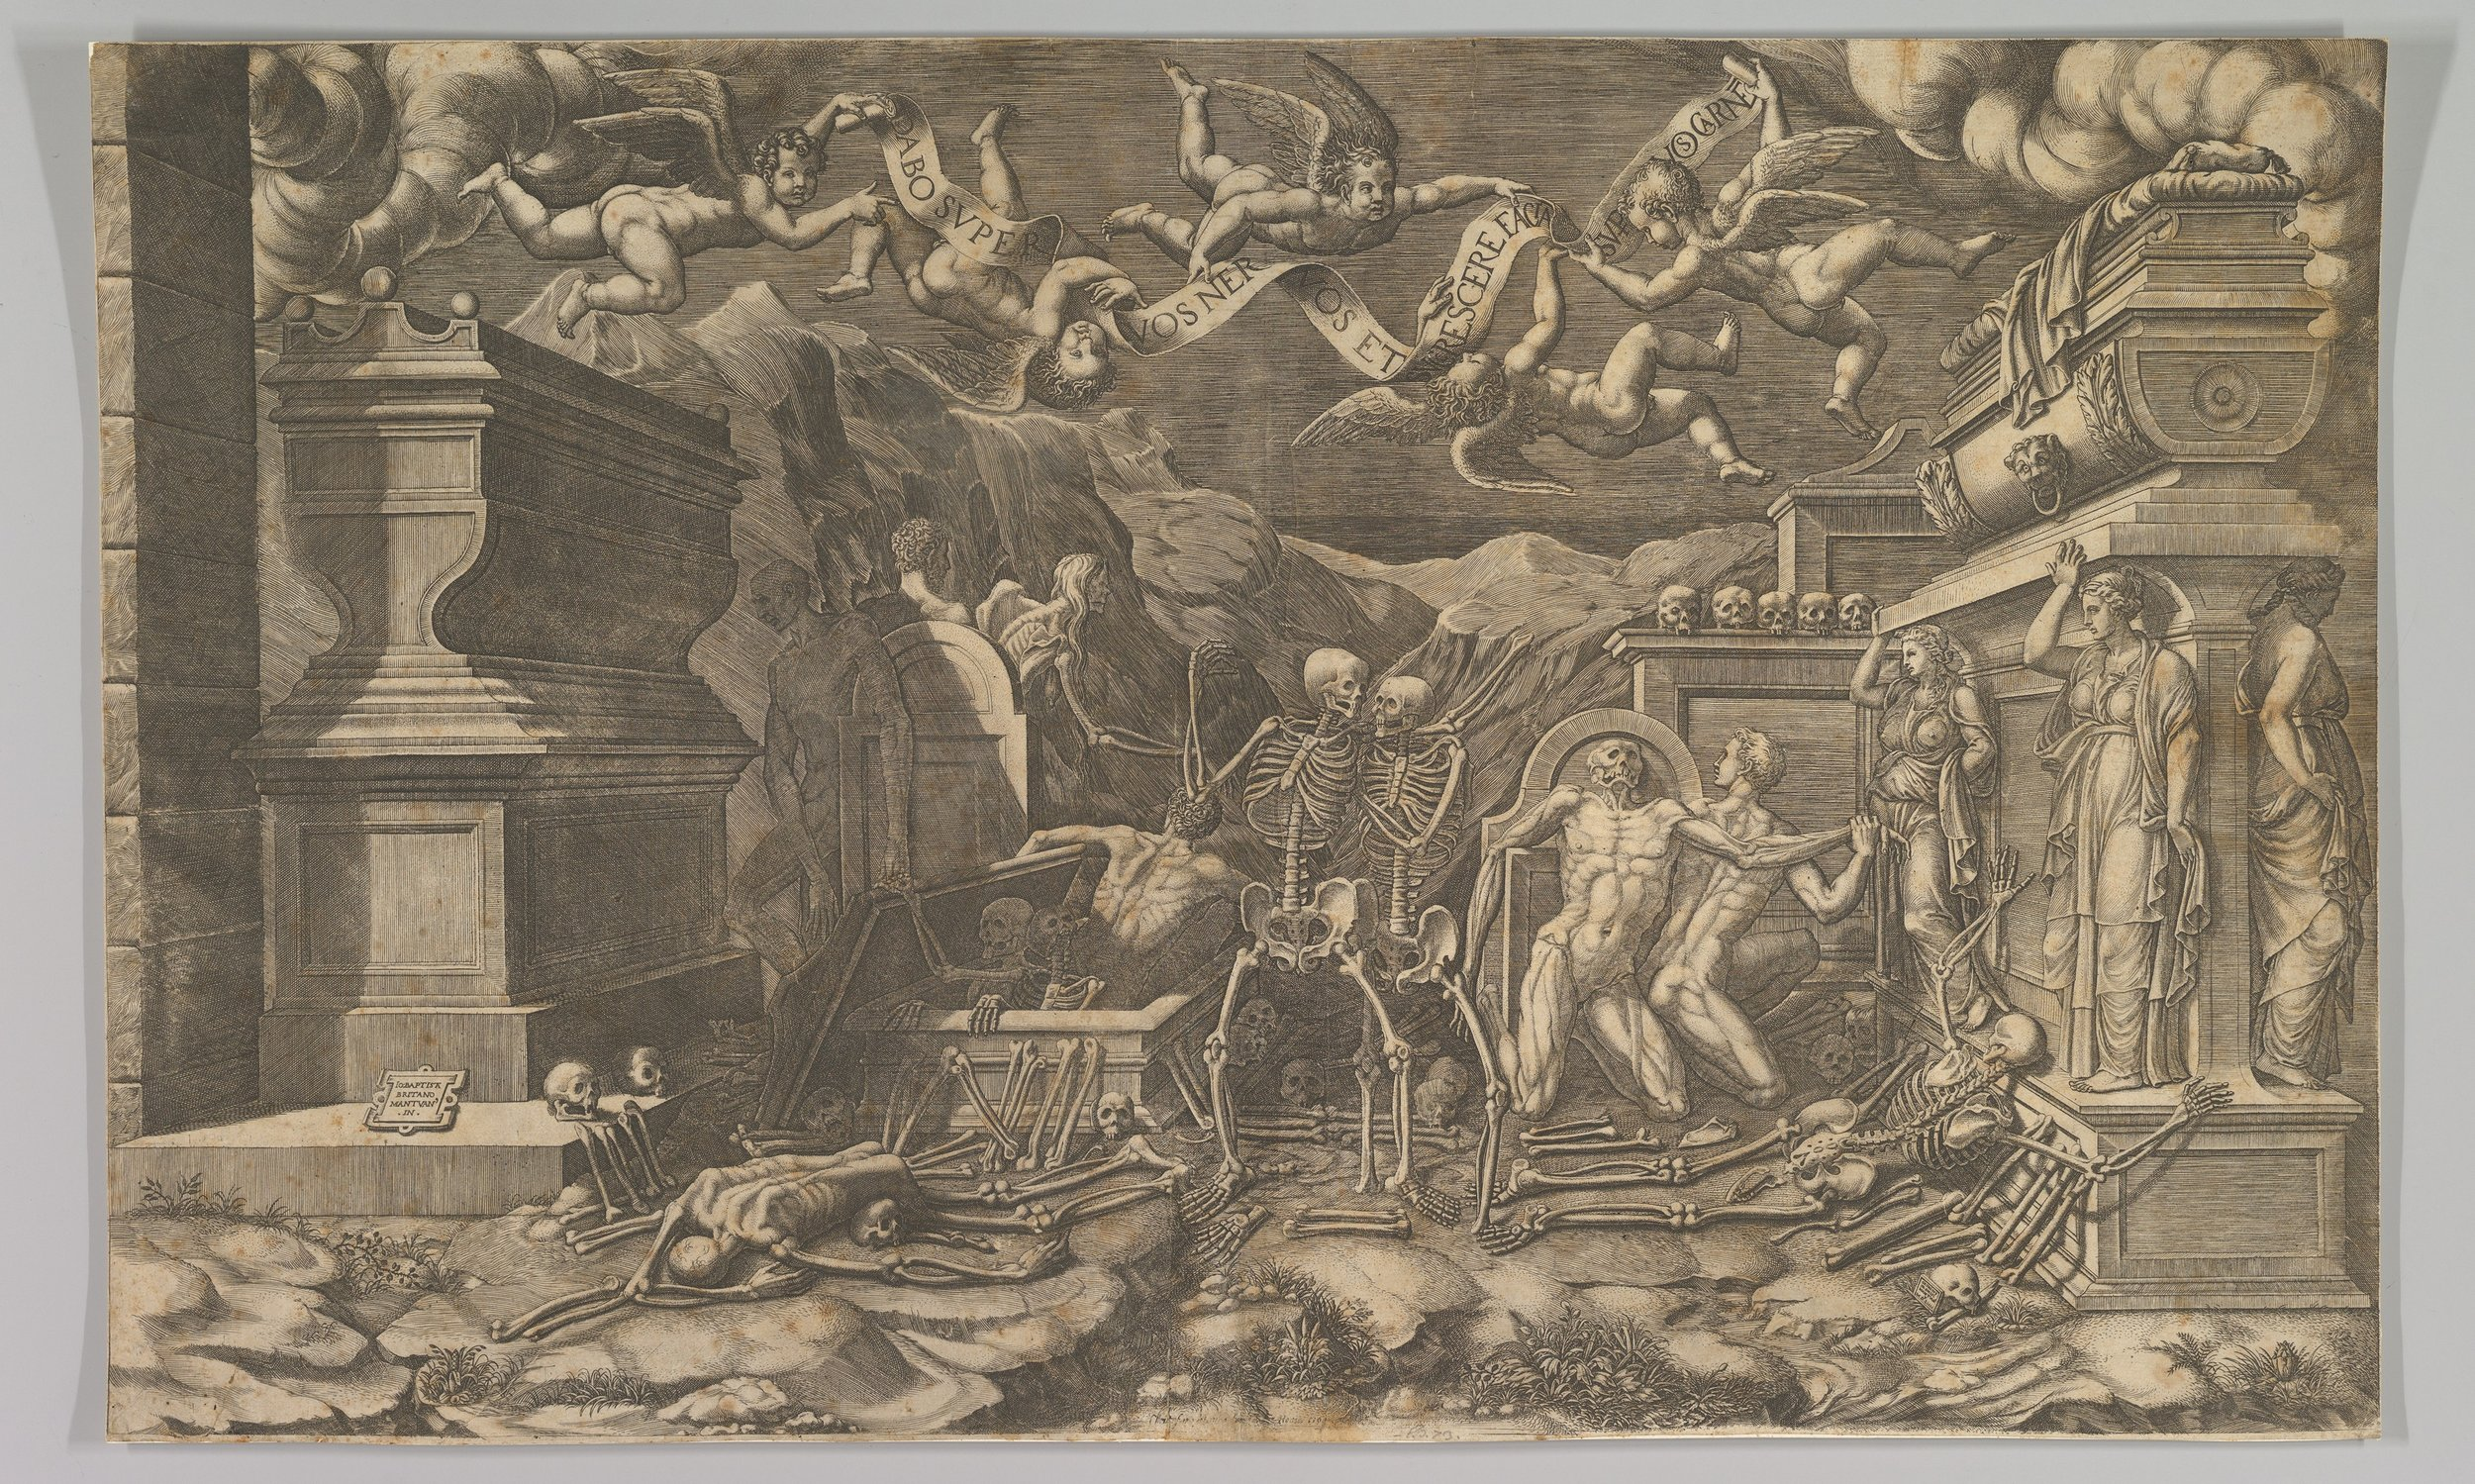 """The Vision of Ezekiel"" (1554), Giorgio Ghisi (Metropolitan Museum of Art)"